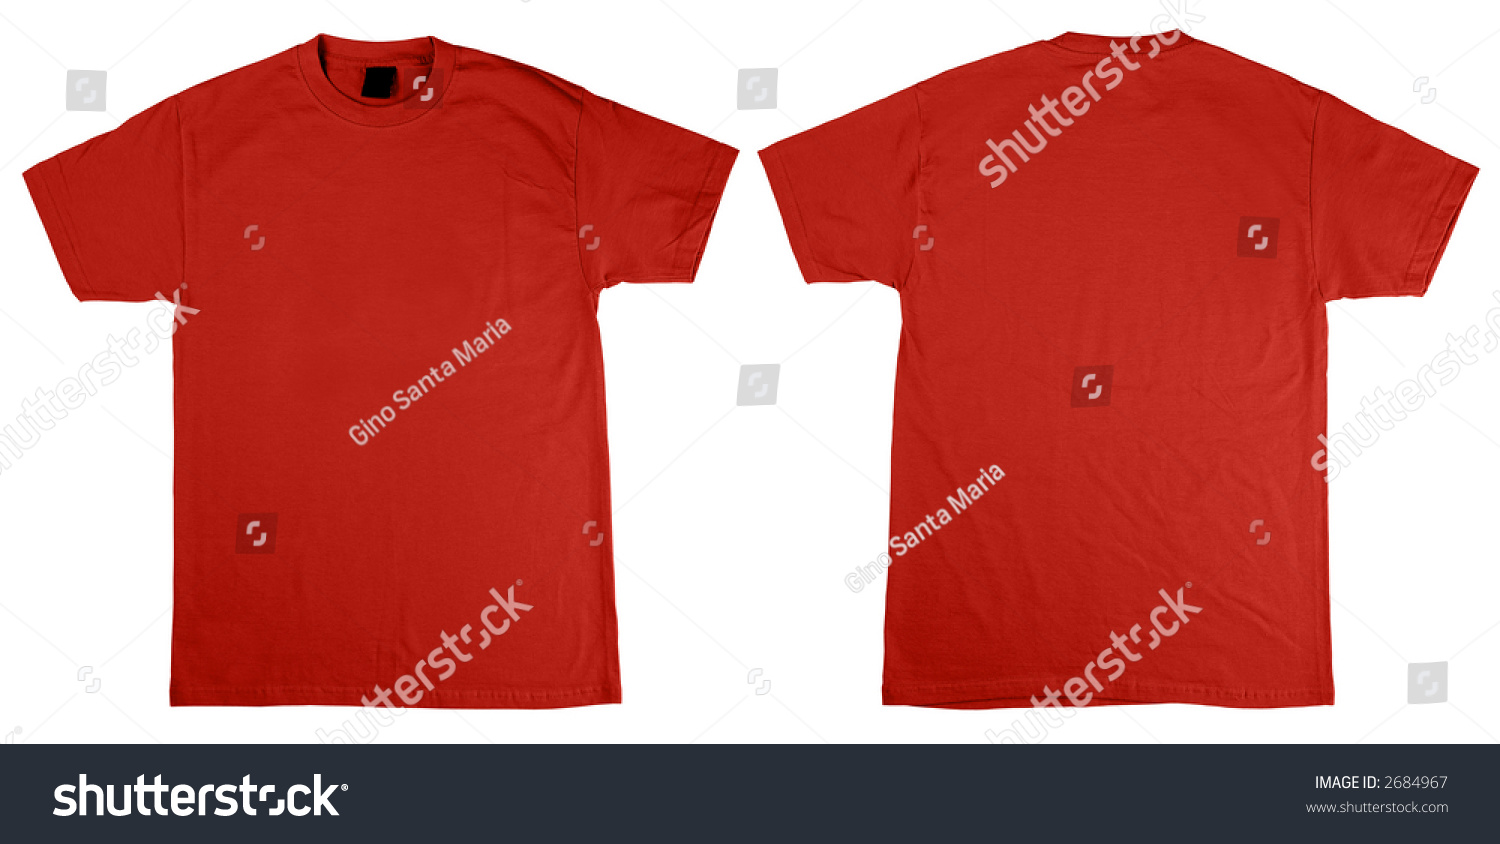 Design your t-shirt - Test Your T Shirt Design On Preview Save To A Lightbox